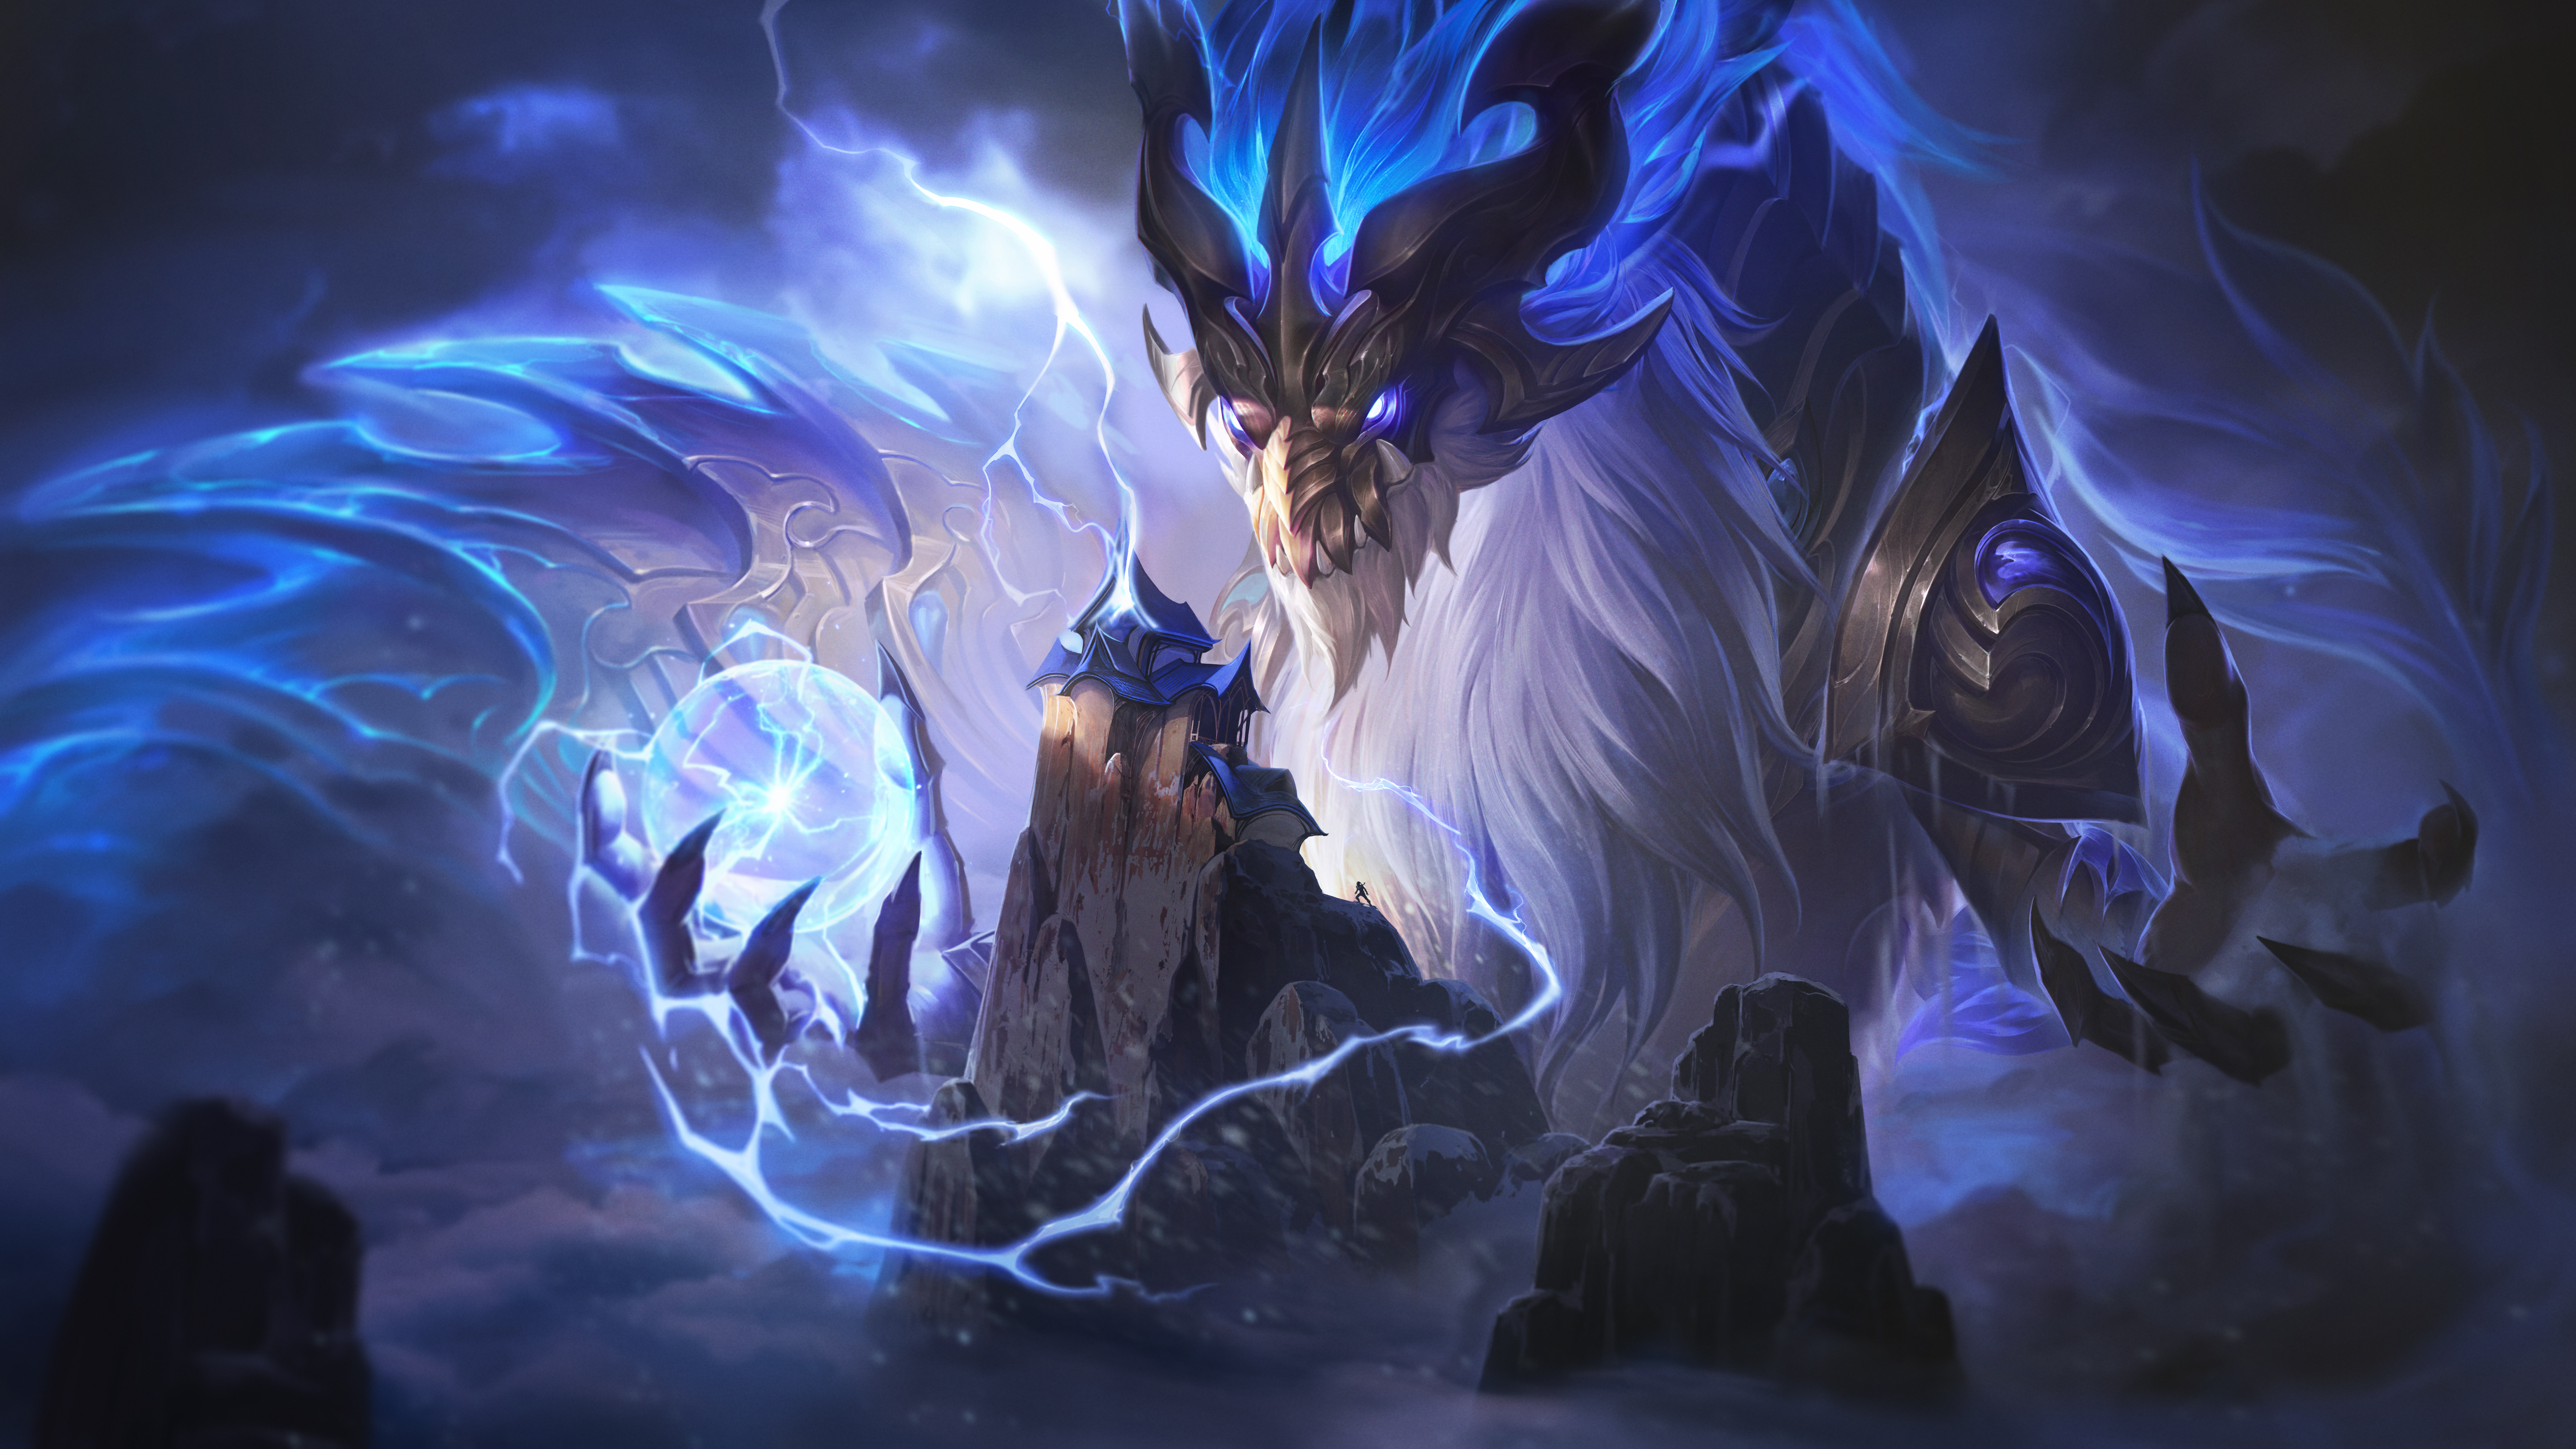 Worlds 2020 event missions